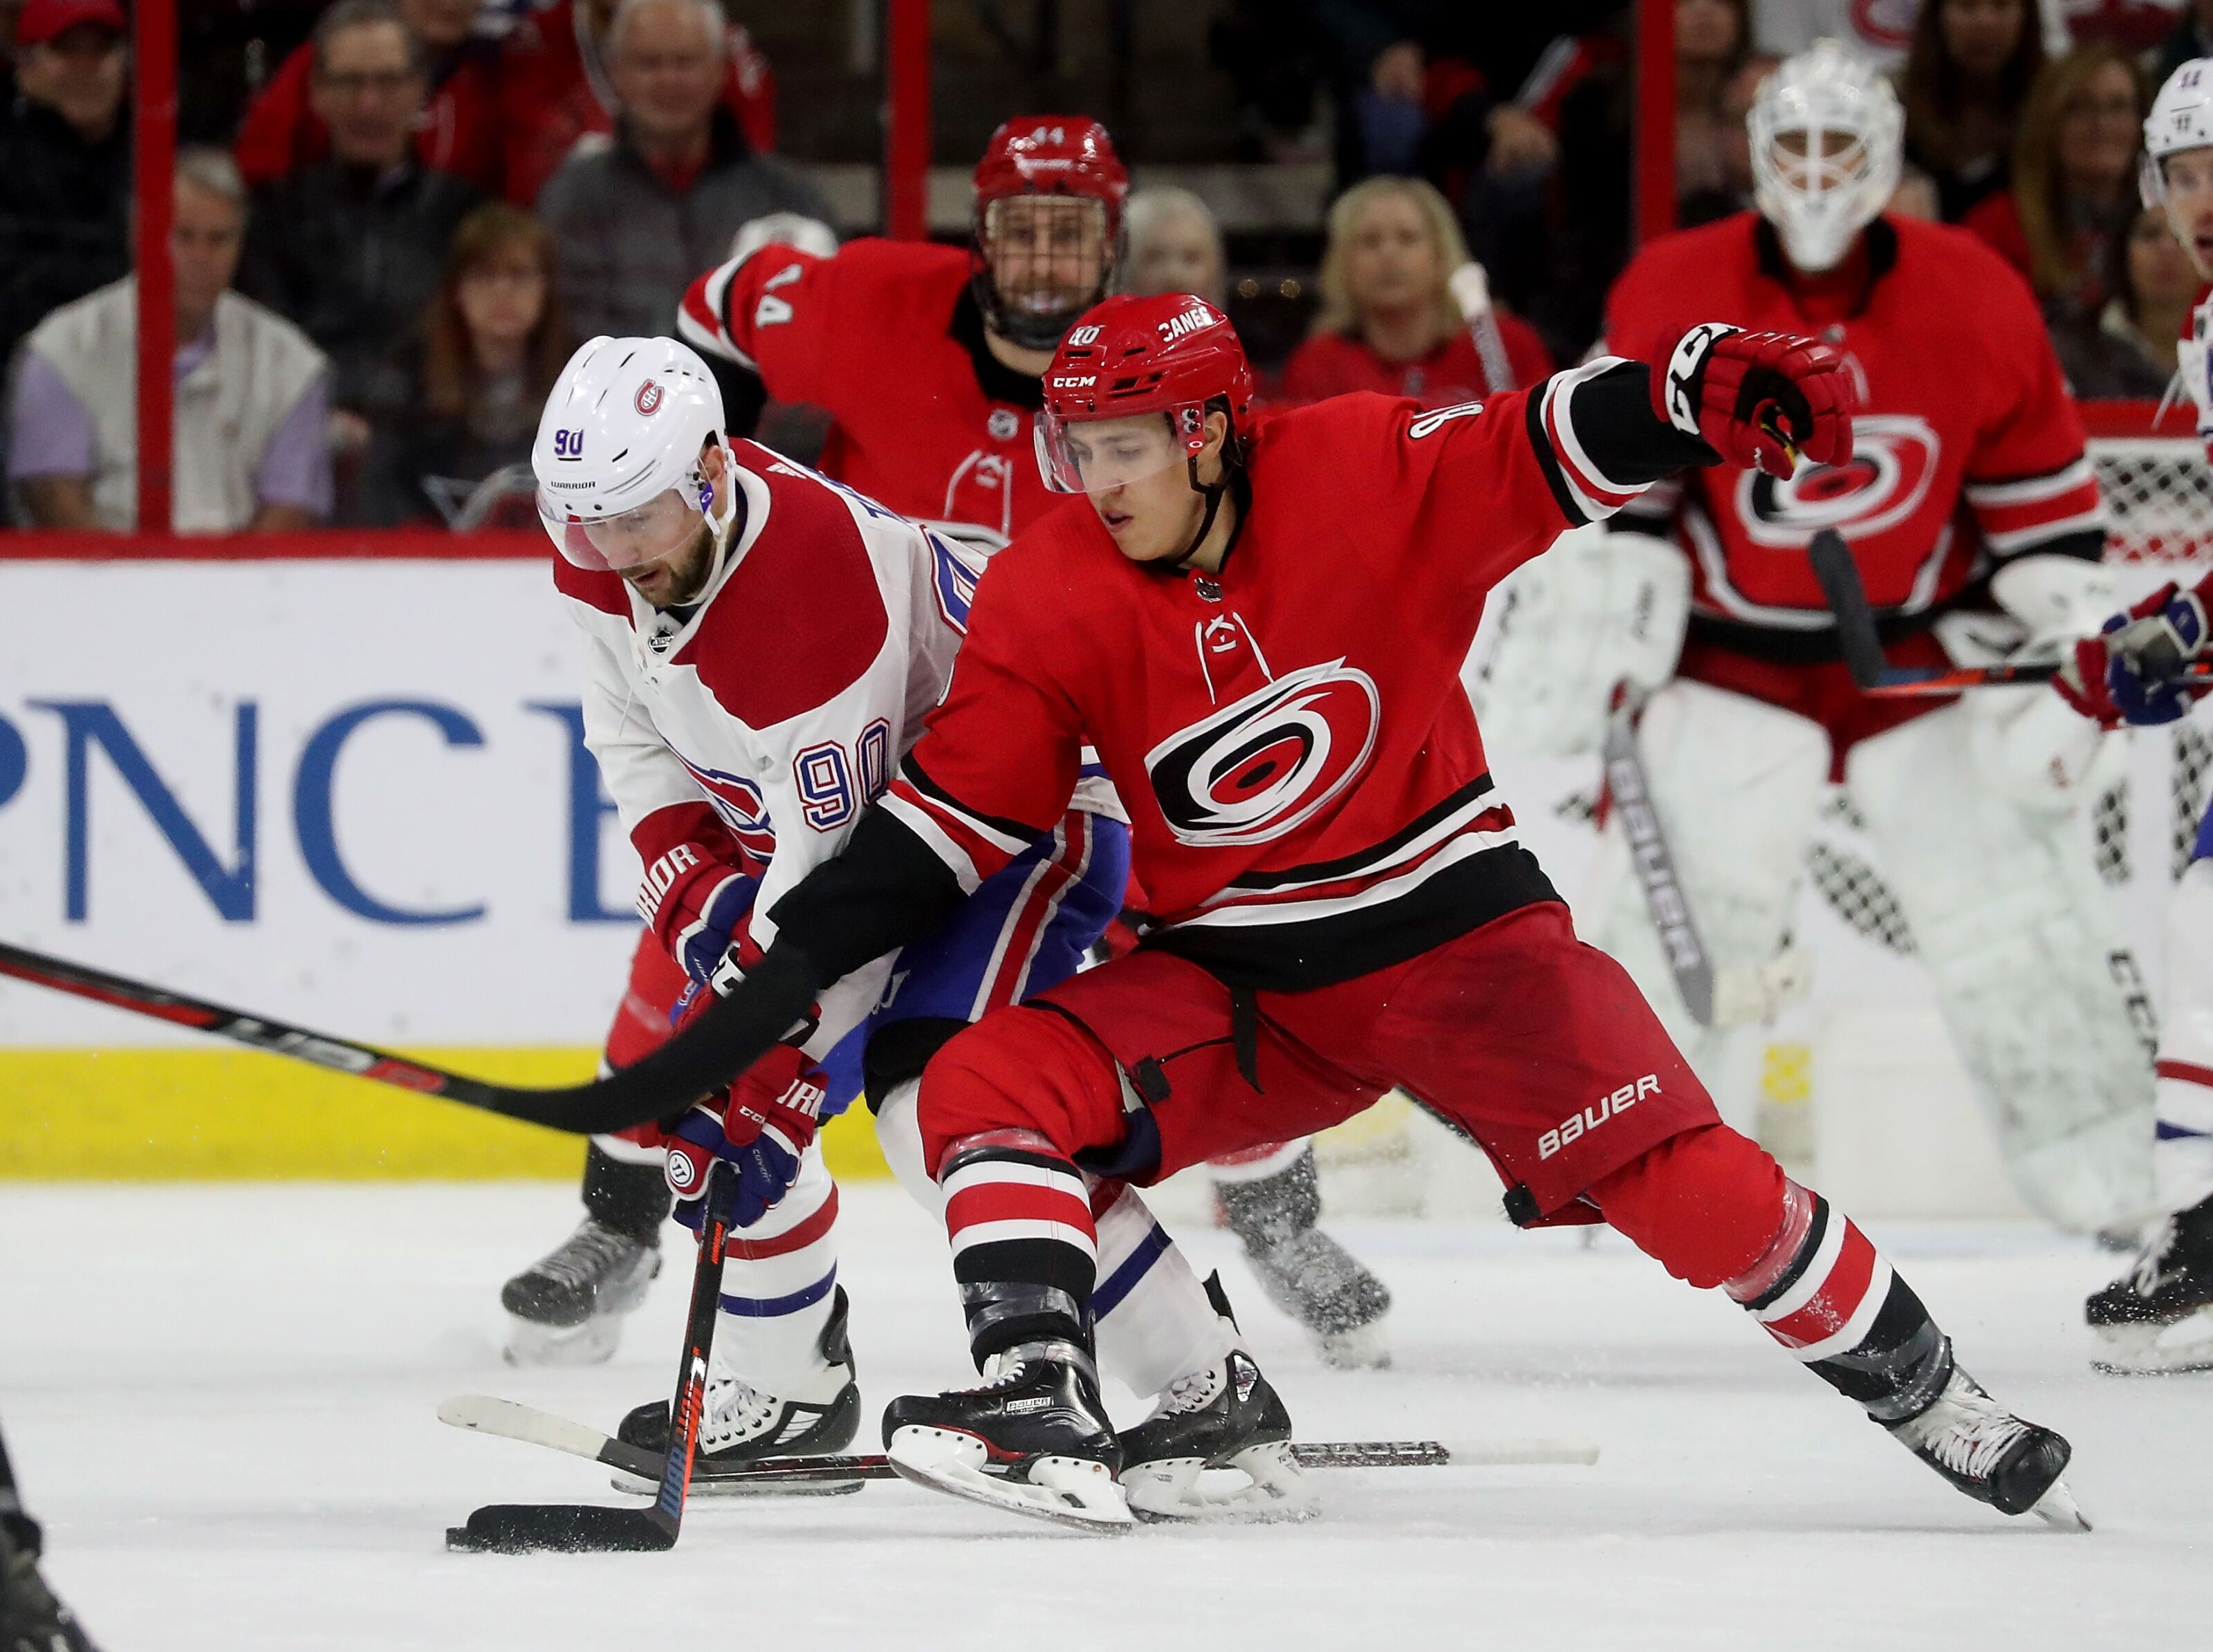 Cale Fleury shines as the Montreal Canadiens Leave Carolina With 1 Point